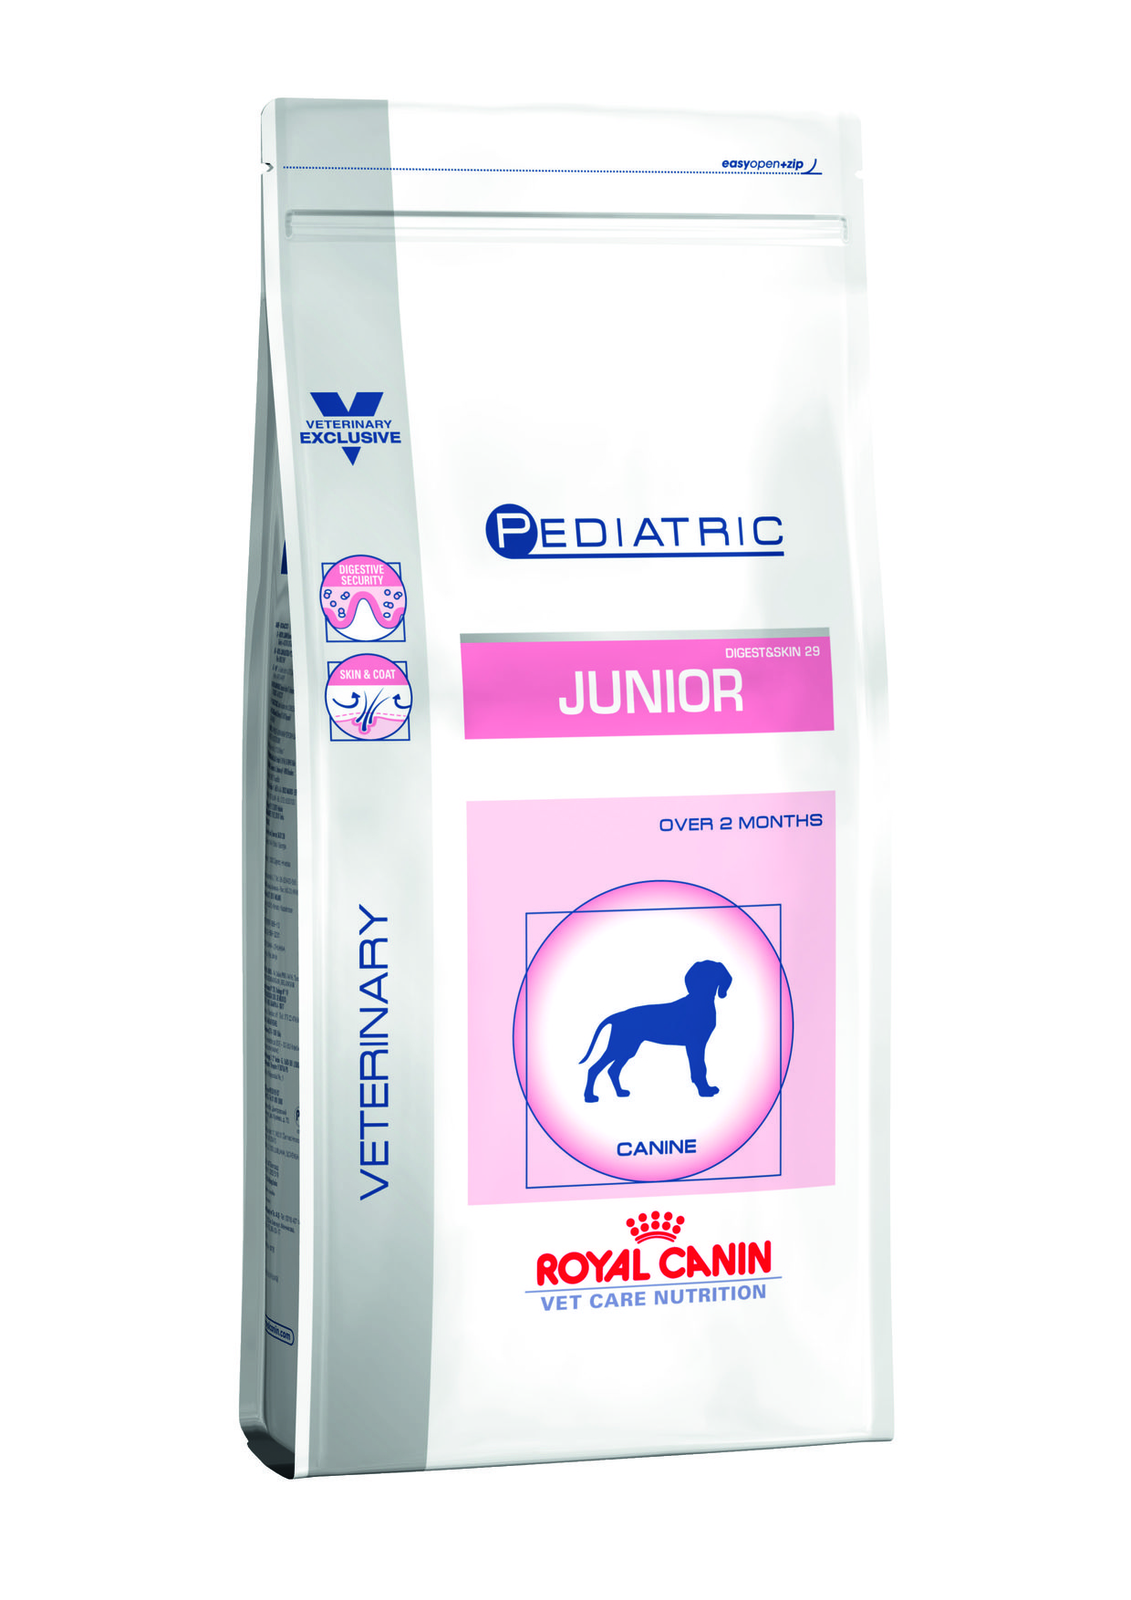 Royal Canin Pediatric Junior Dog 4kg